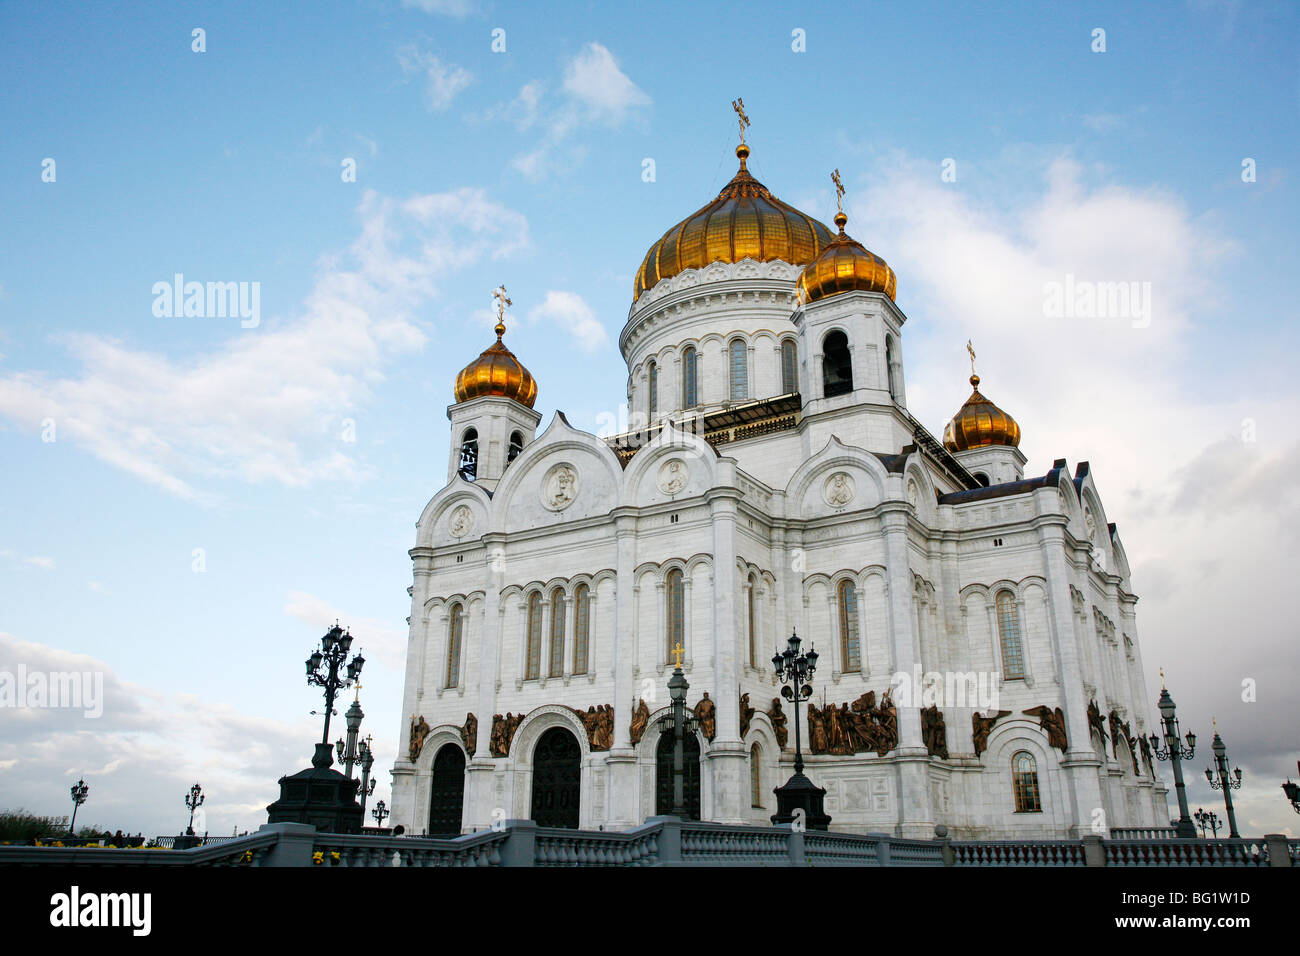 Cathedral of Christ the Saviour, Moscow, Russia, Europe - Stock Image